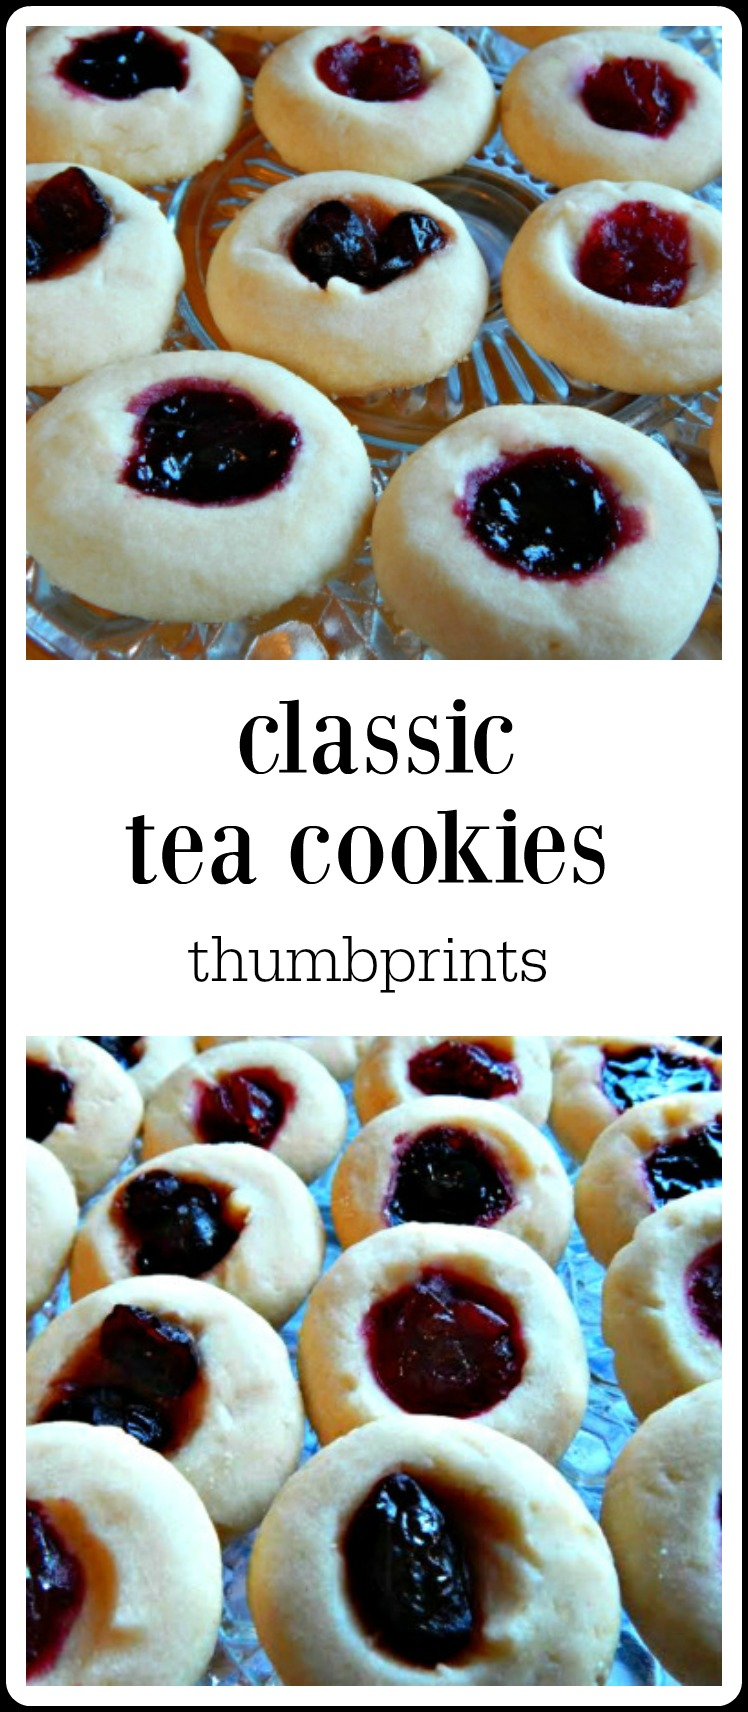 Classic Tea Thumbprint Cookies are such a perfect Holiday cookie! They're easy, festive and customizable and take so little skill (or time) to make! #ClassicTeaCookies #ThumbprintCookies #TeaCookiesThumbprint